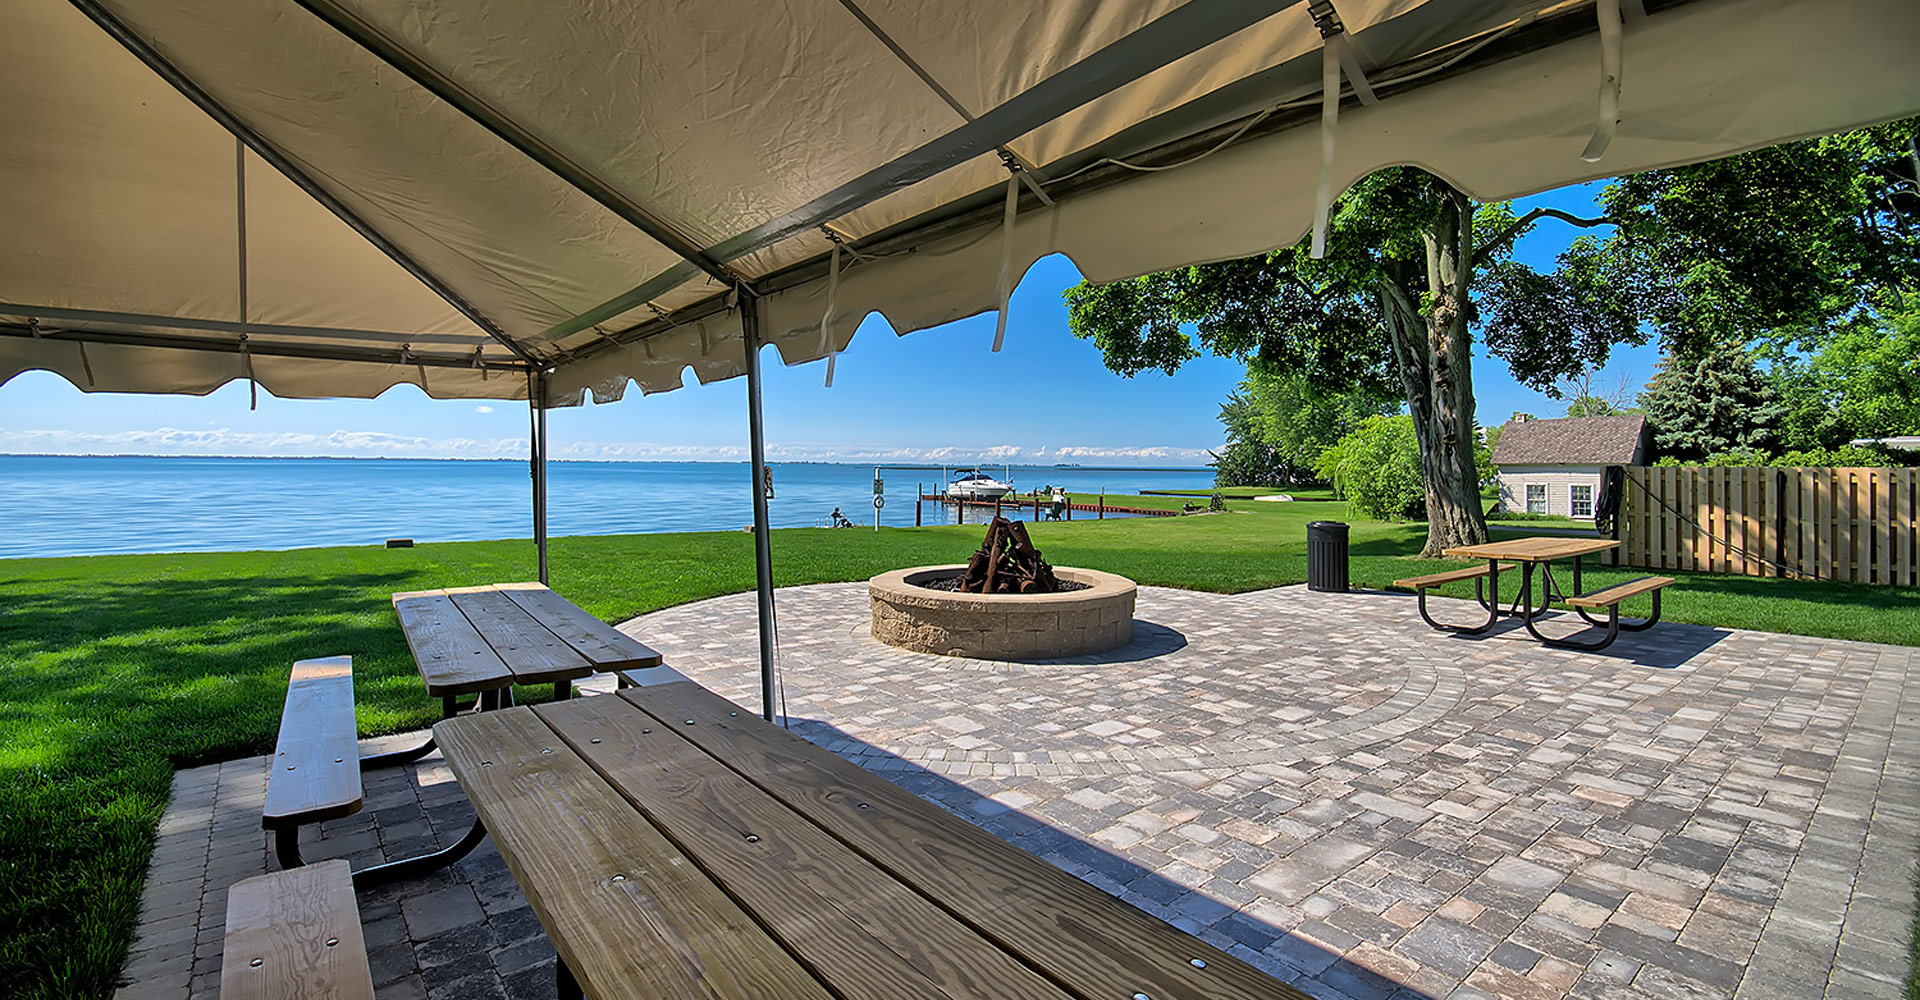 Northpointe Shores RV Resort offers beautiful views of